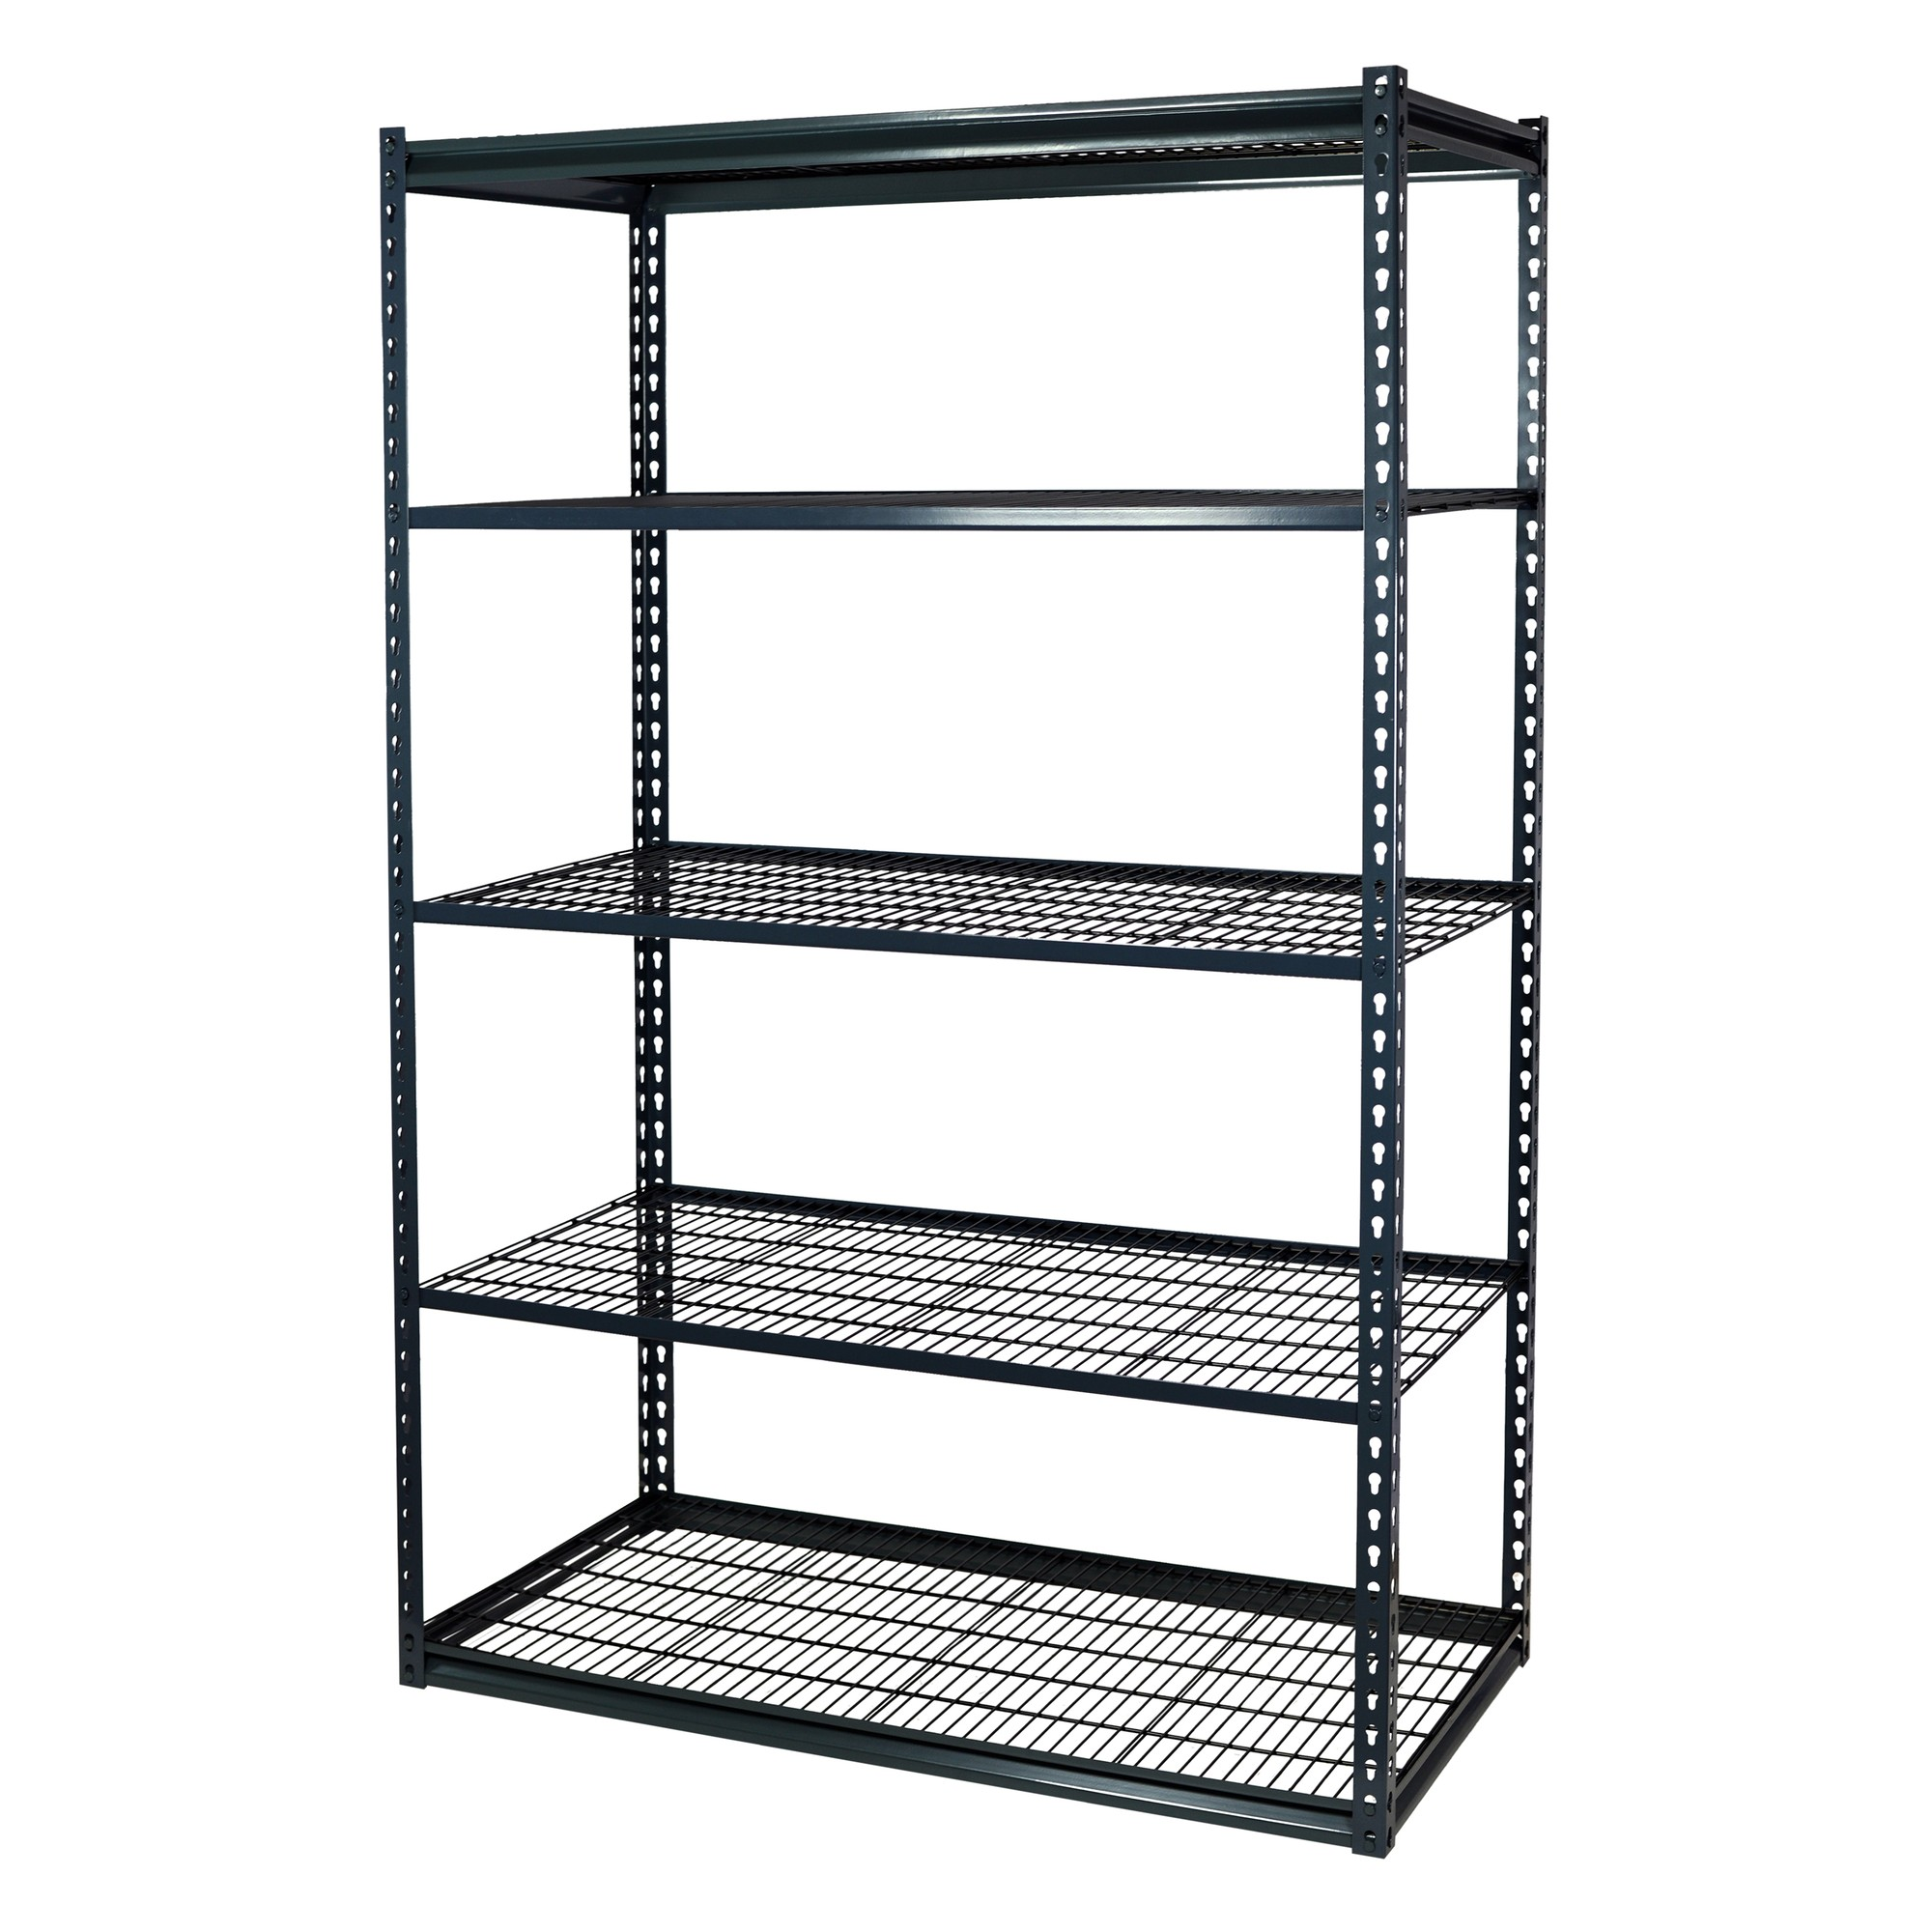 Garage Shelving Units Storage Max Garage Shelving Boltless 36 X 12 X 72 Low Profile 5 Shelves